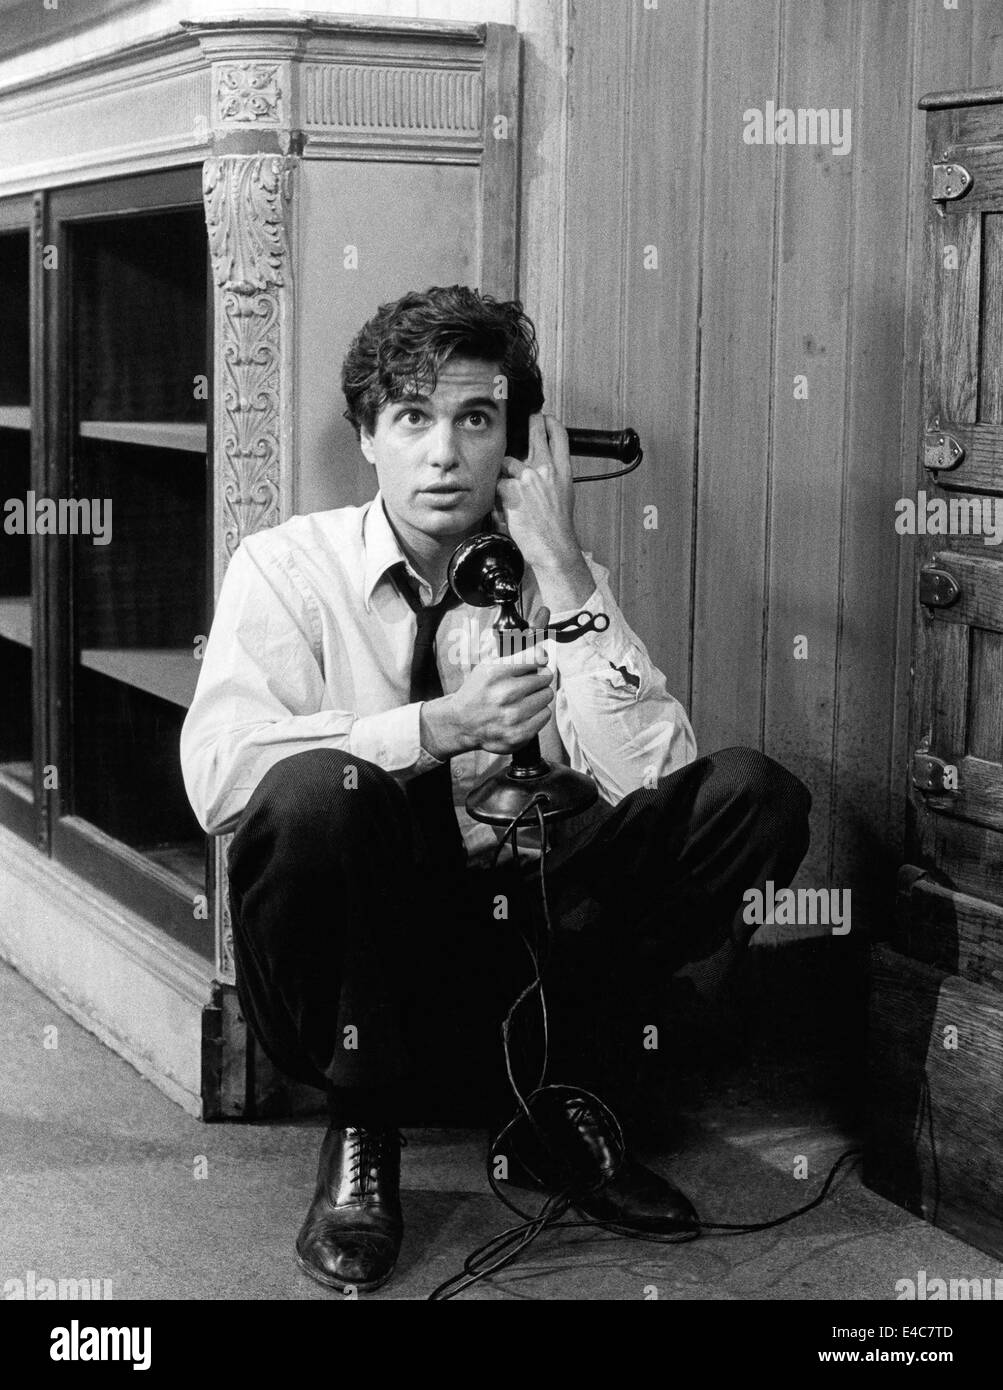 Chris Sarandon, on-set of the TV Movie, 'You Can't Go Home Again', 1979 - Stock Image